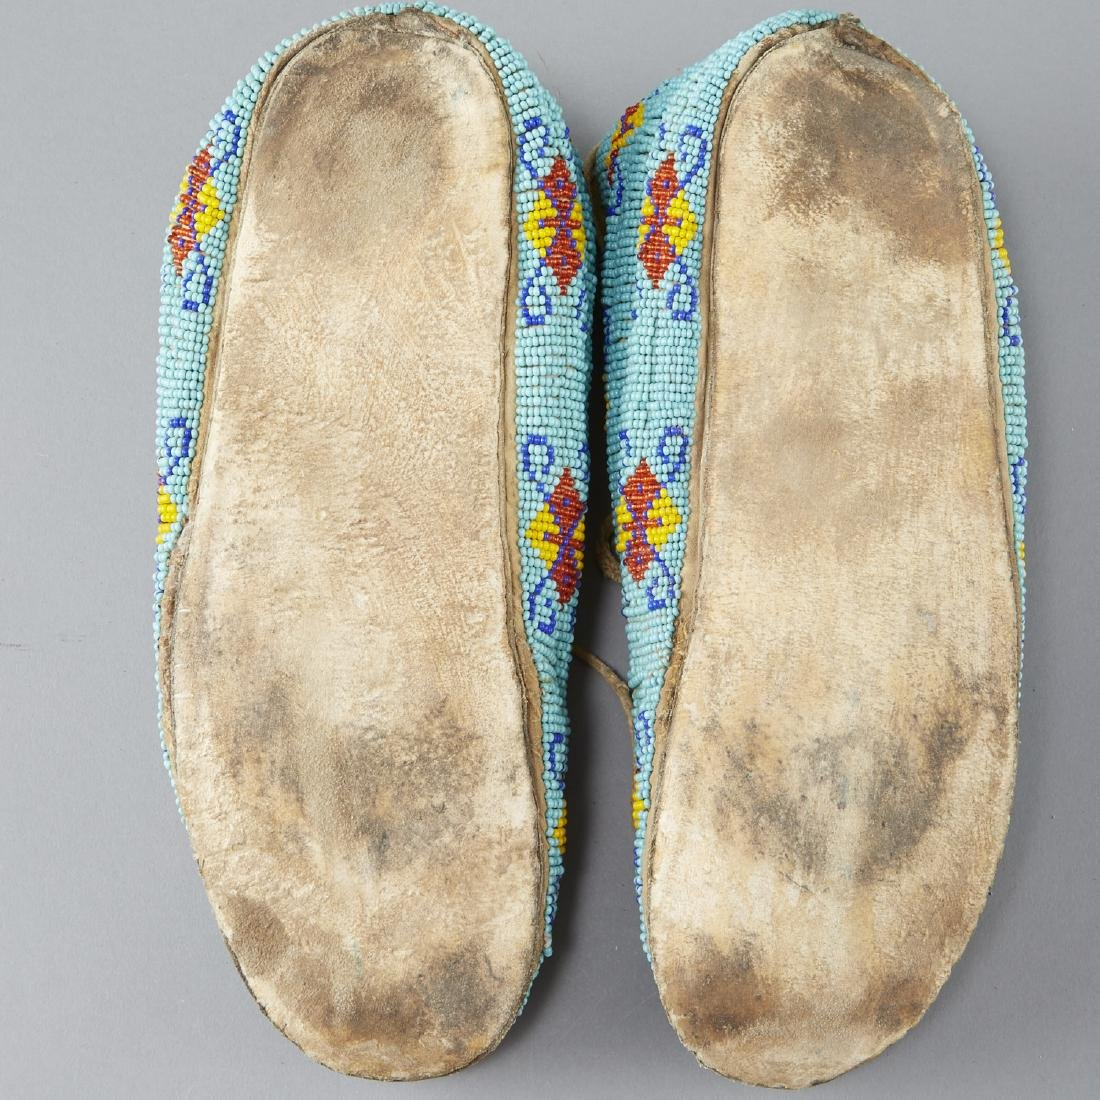 7 Pairs Beaded Moccasins - 7